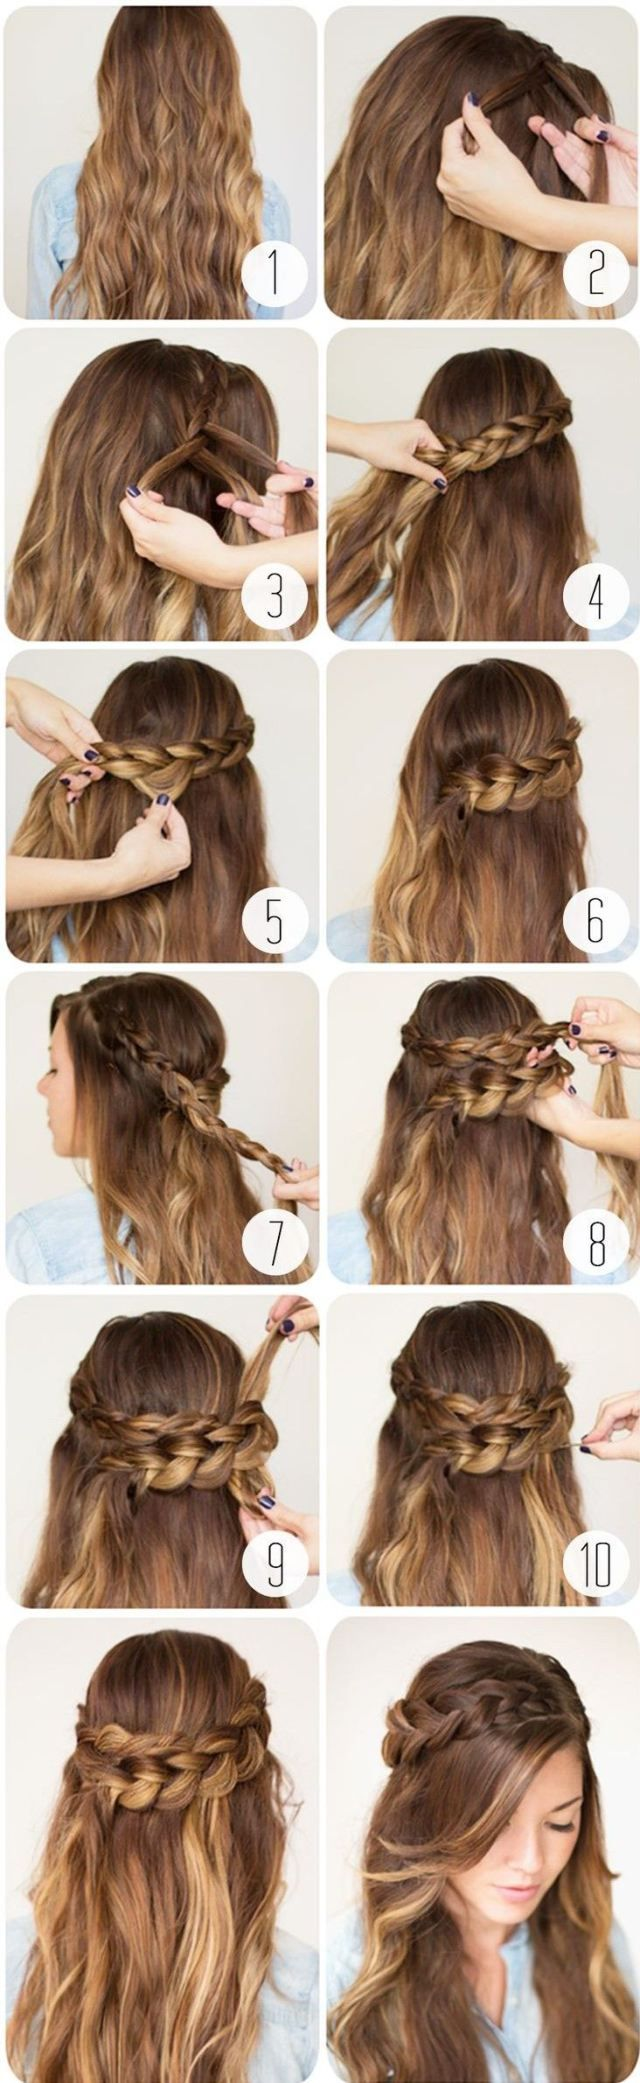 Step By Step Braided Hair Tutorials | 20 Cute and Easy Braided Hairstyle Tutorials http://www.jexshop.com/